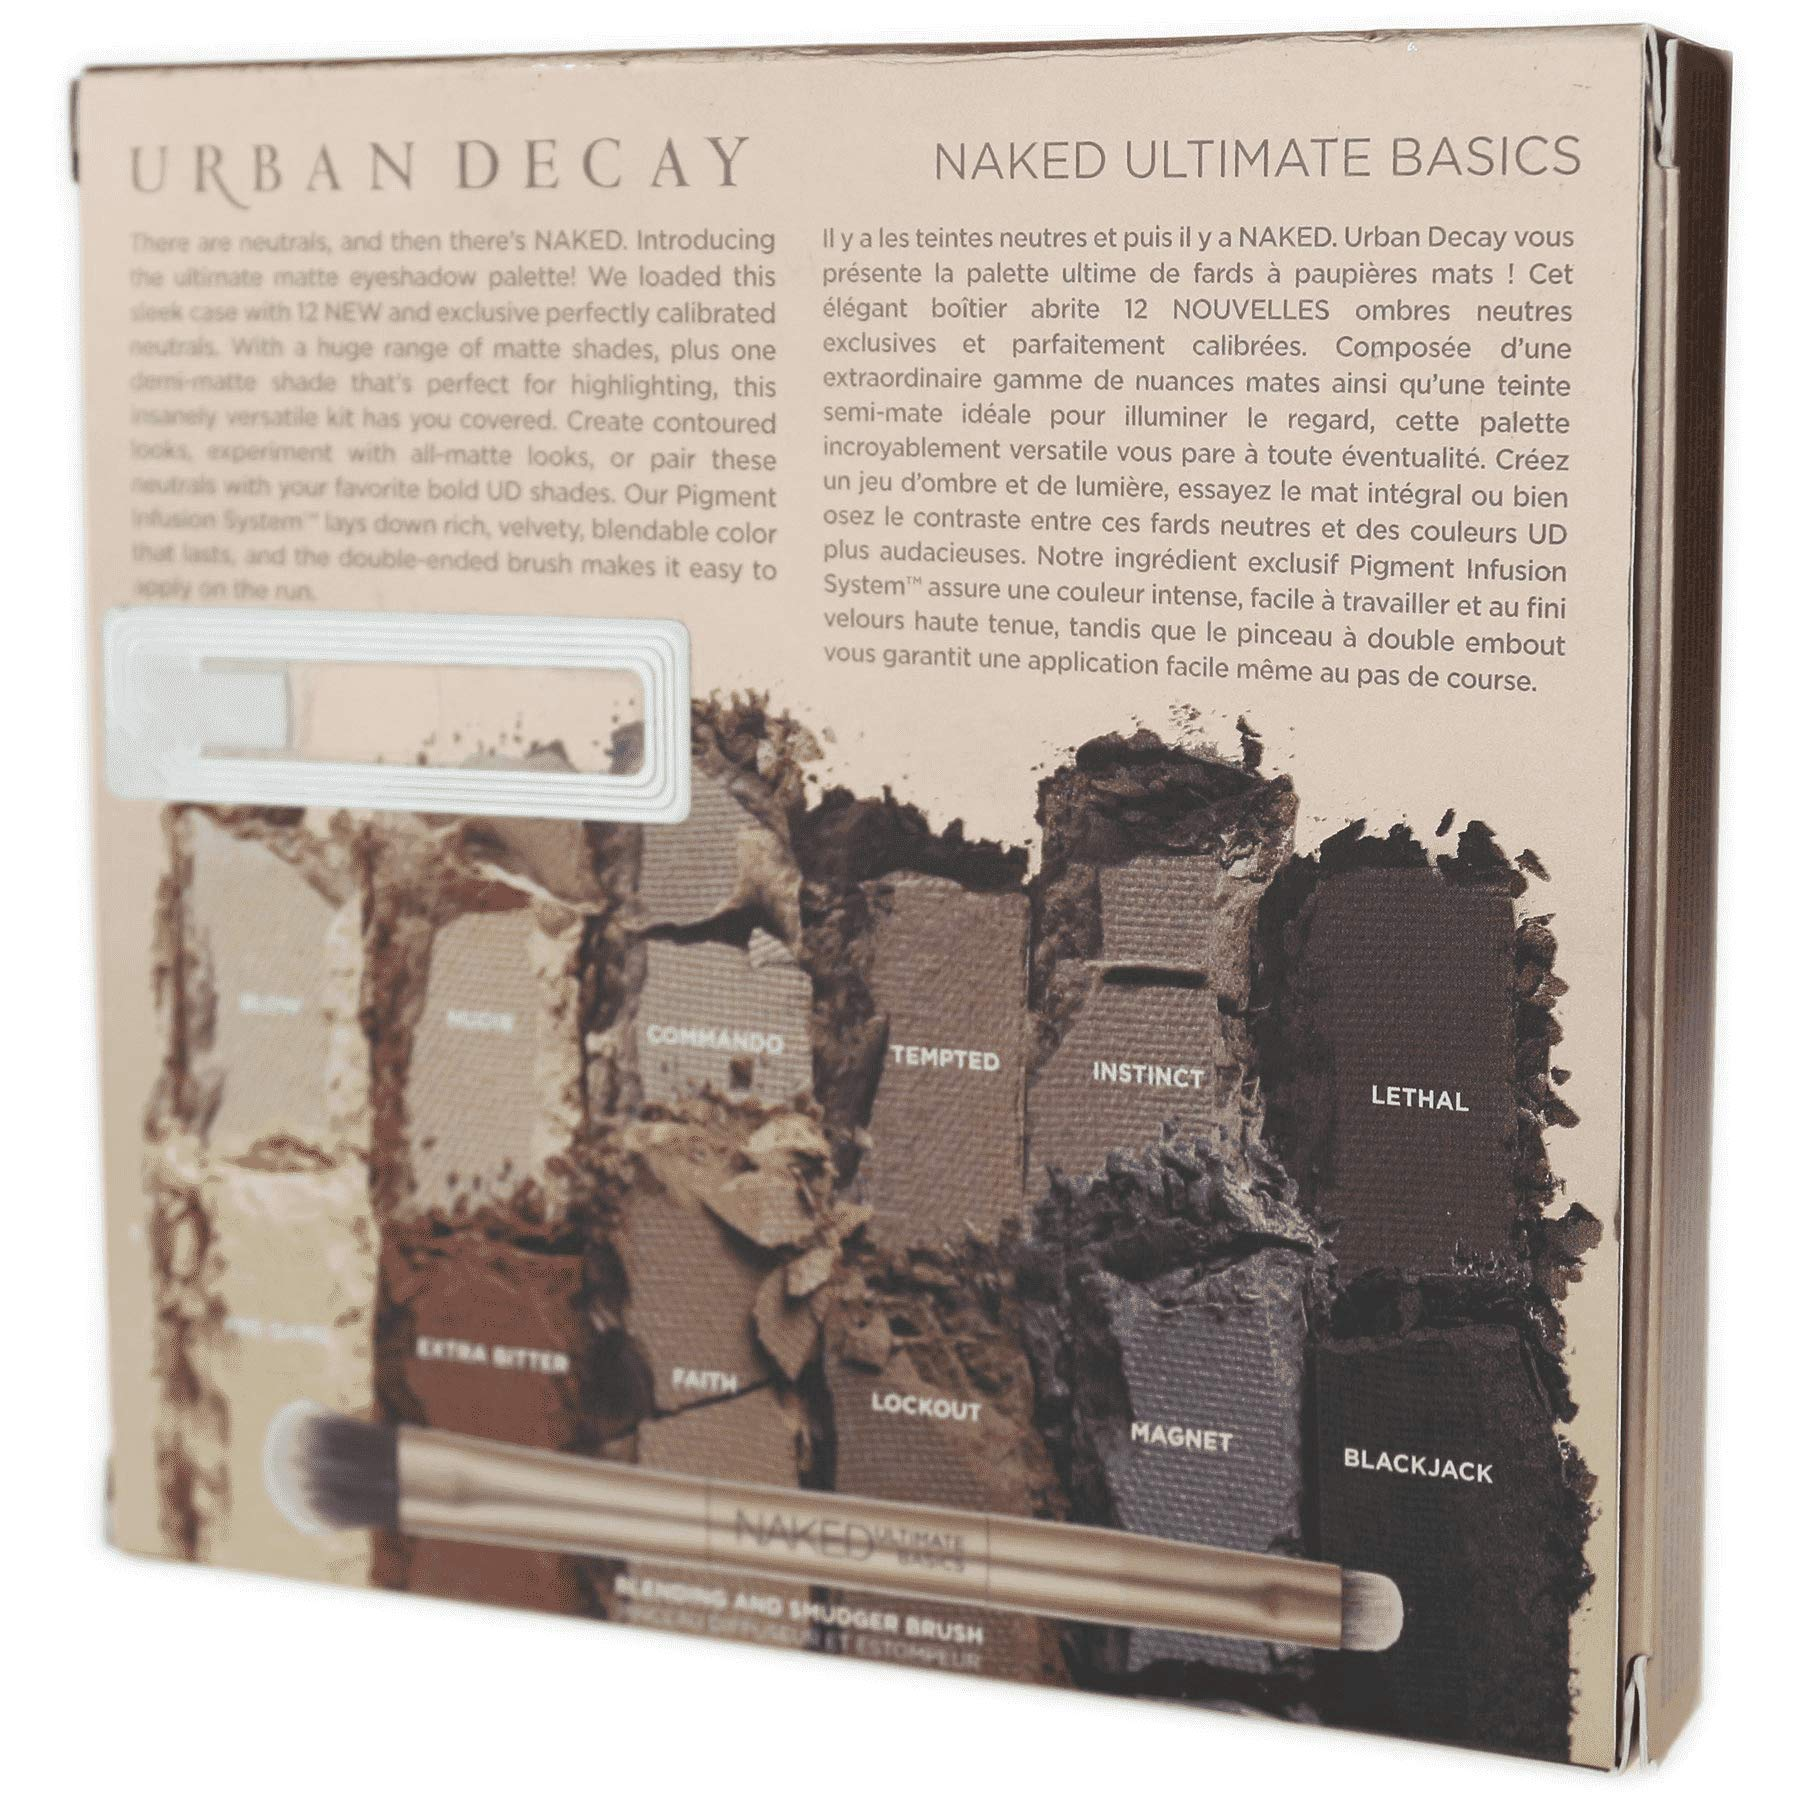 Naked Ultimate Basics by